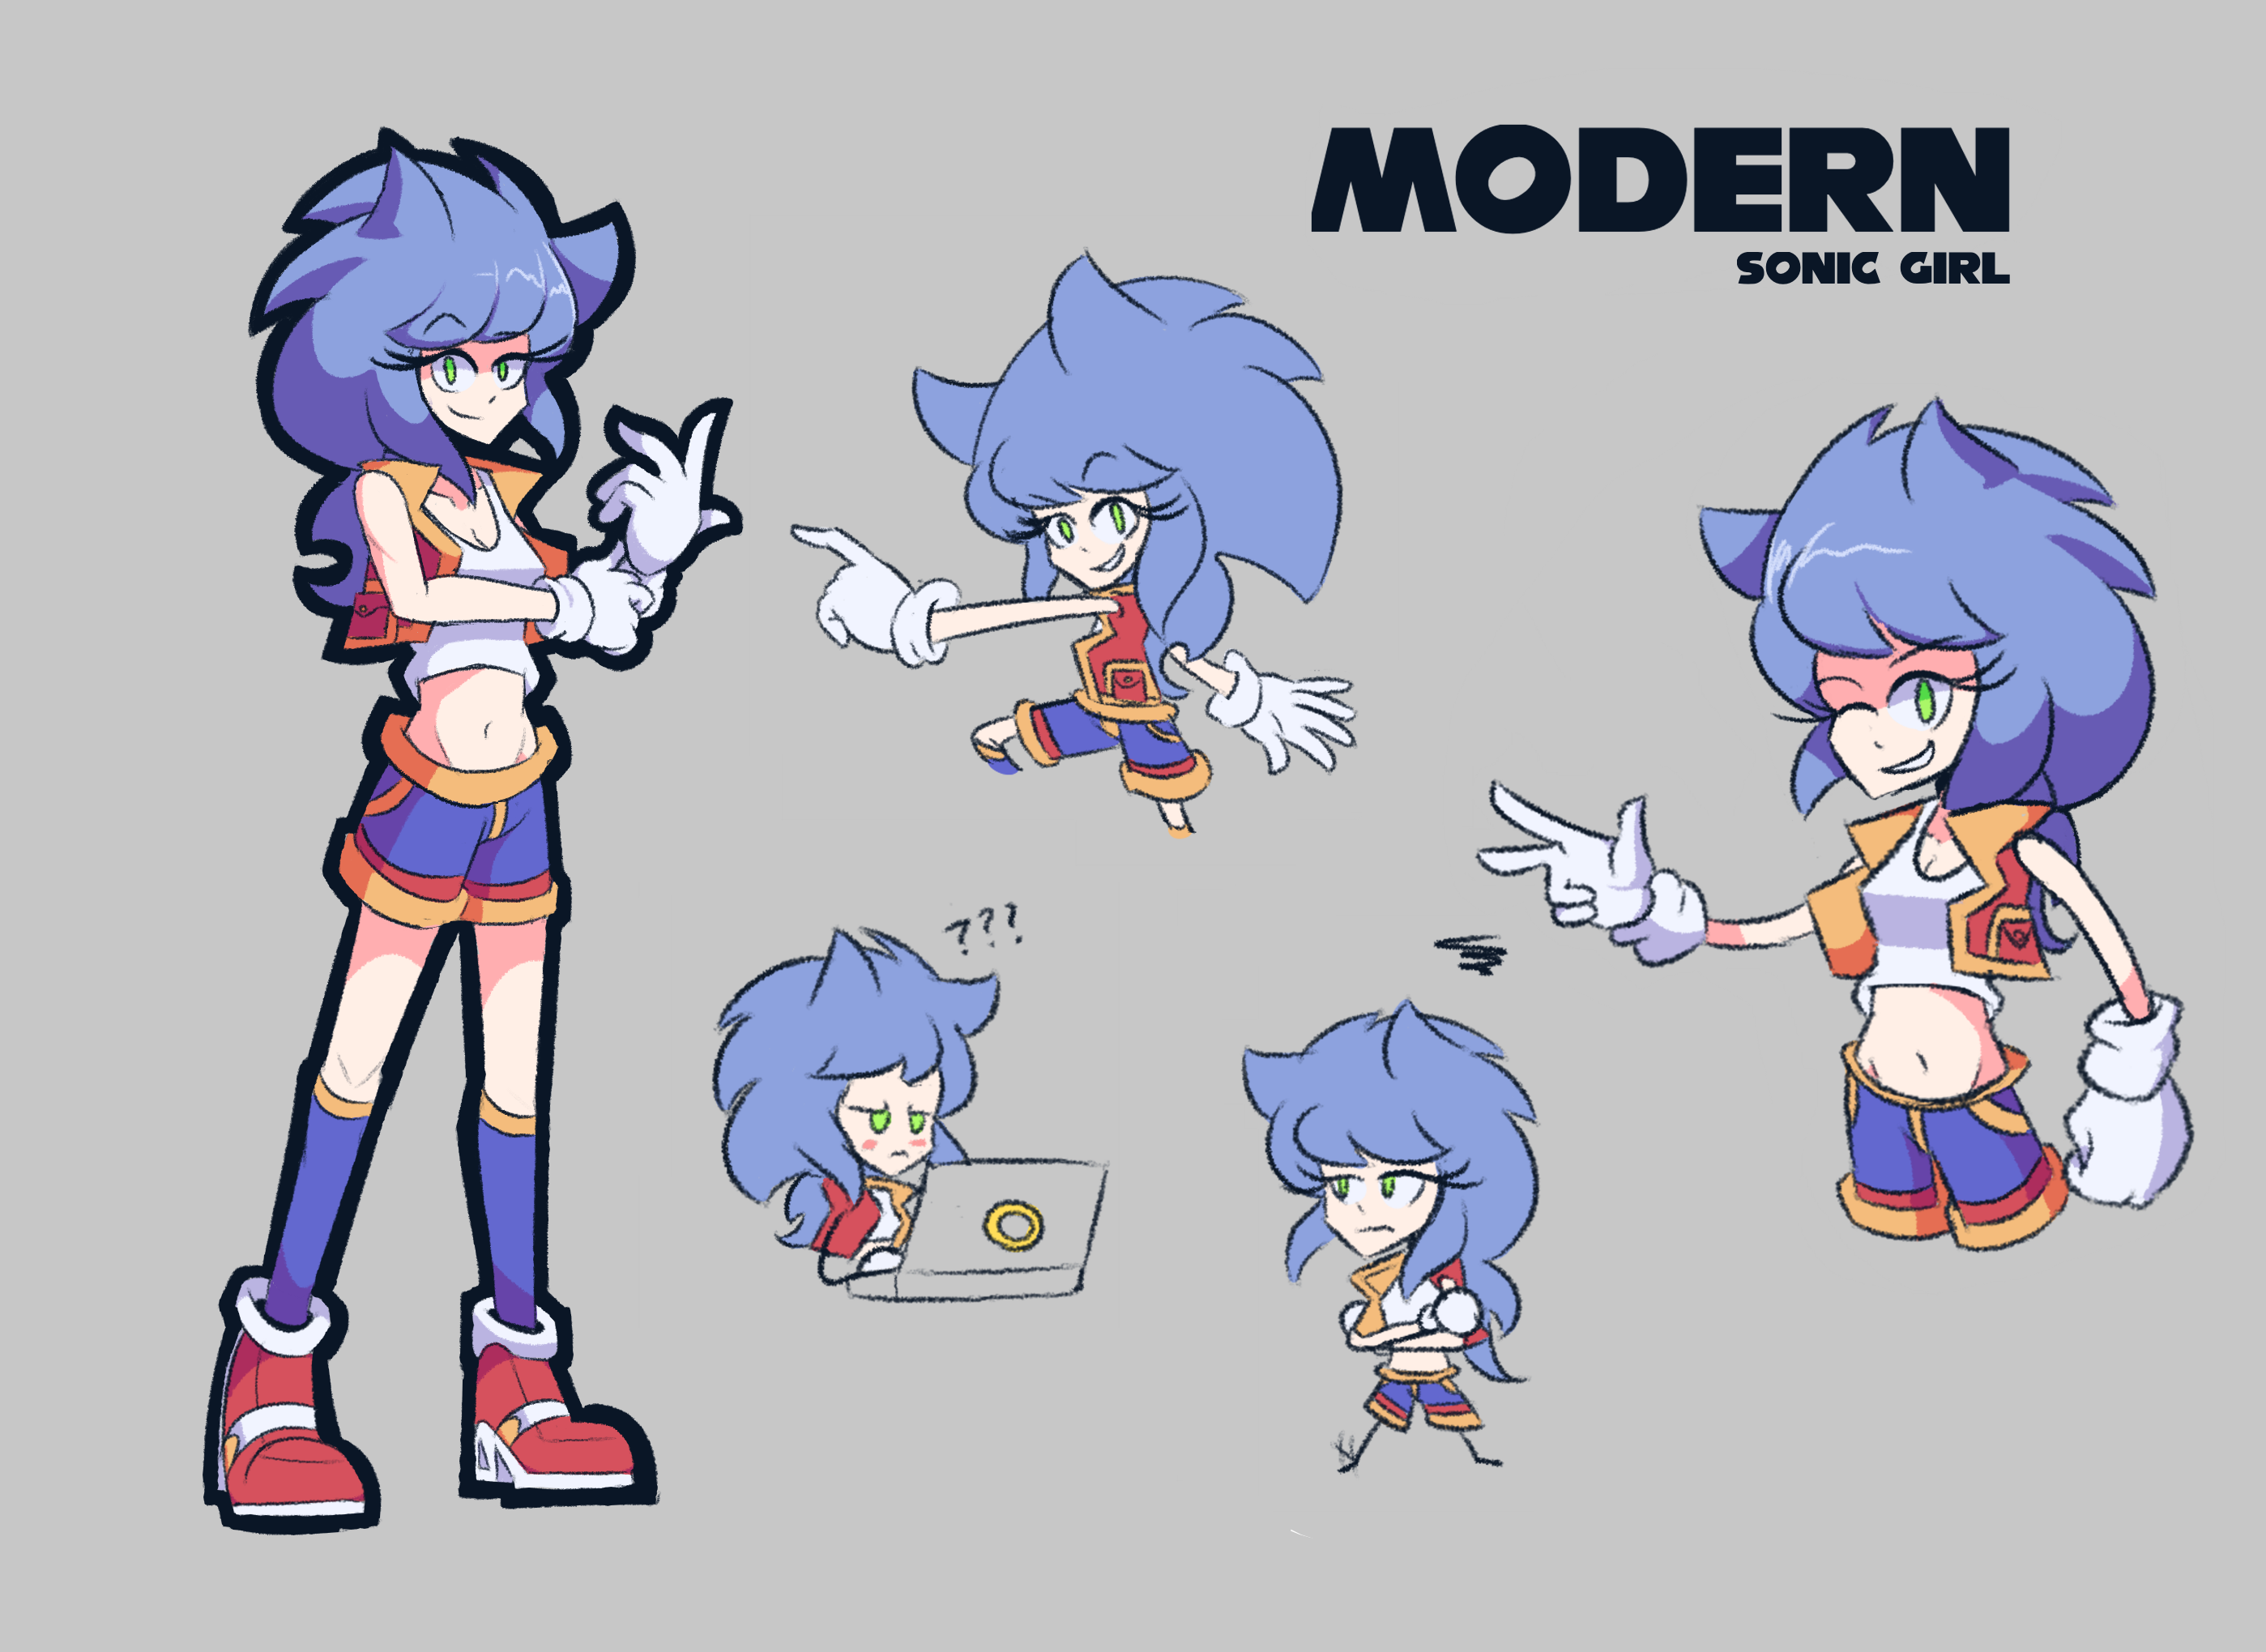 Modern Sonic Girl Sonic The Hedgehog Know Your Meme